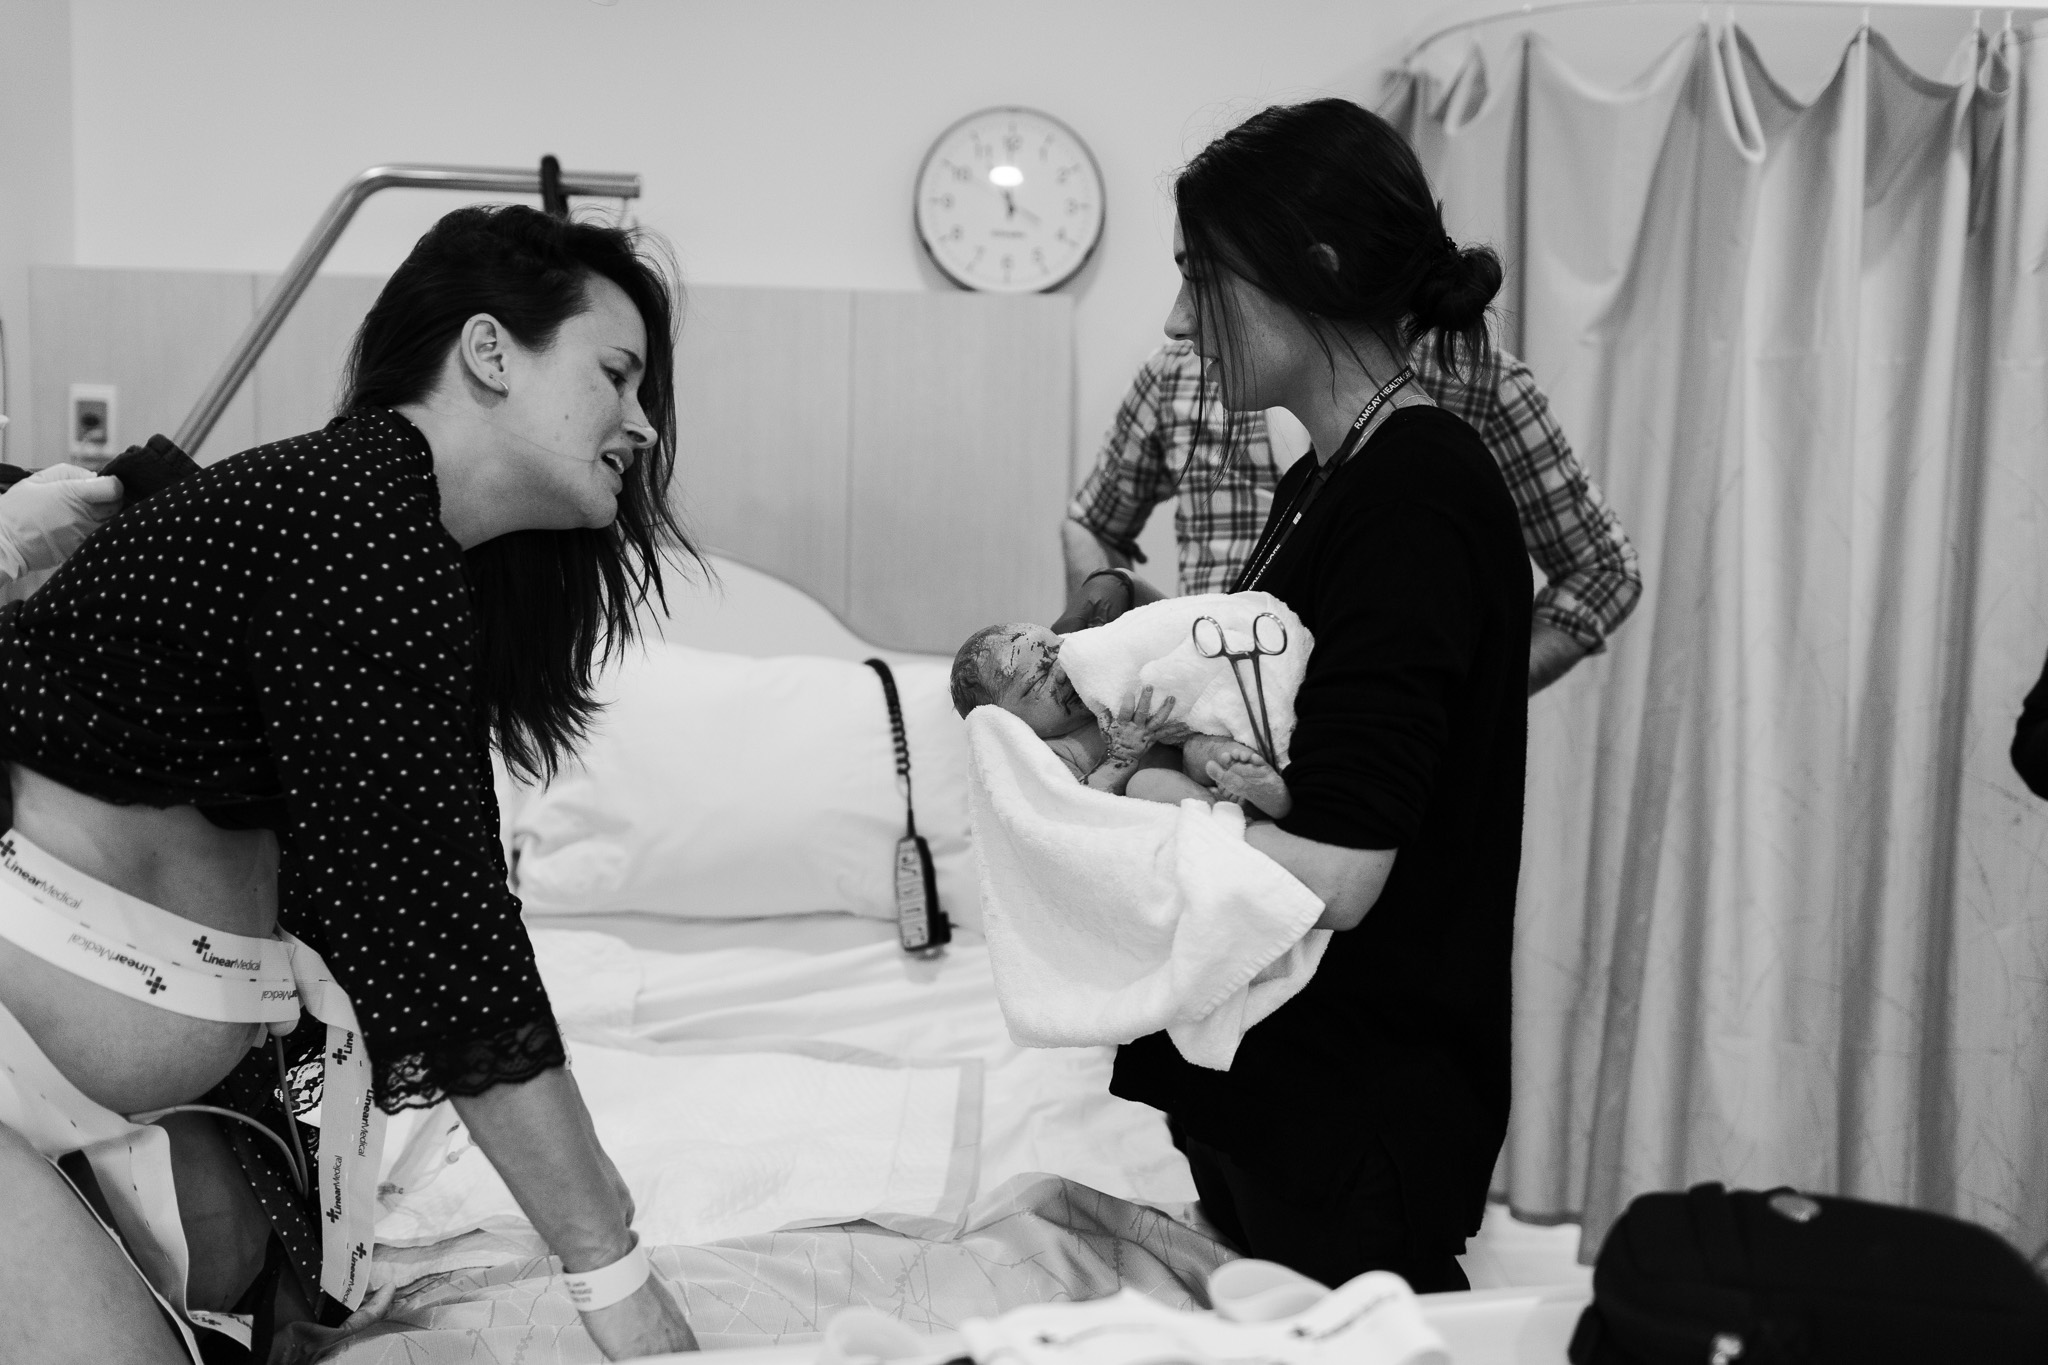 Love at first sight. Mother looking at newborn for the first time after fast birth at melbourne hospital as captured by melbourne birth photographer.